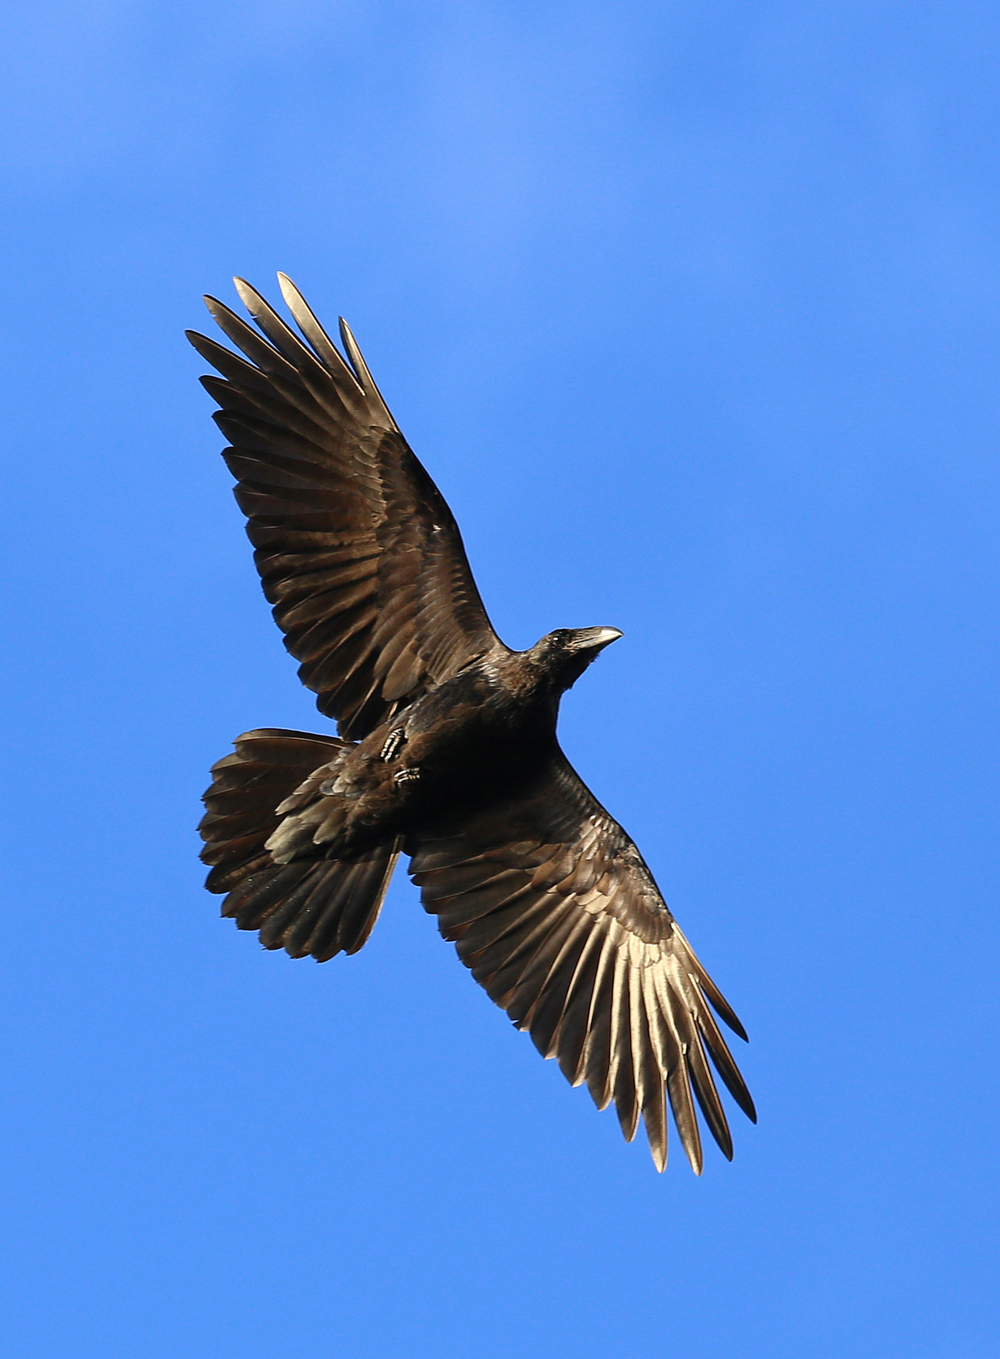 Raven in flight sun on wings beautiful gorgeous pretty corvid Corvus corax big black bird Southeast Alaska flying wingspan